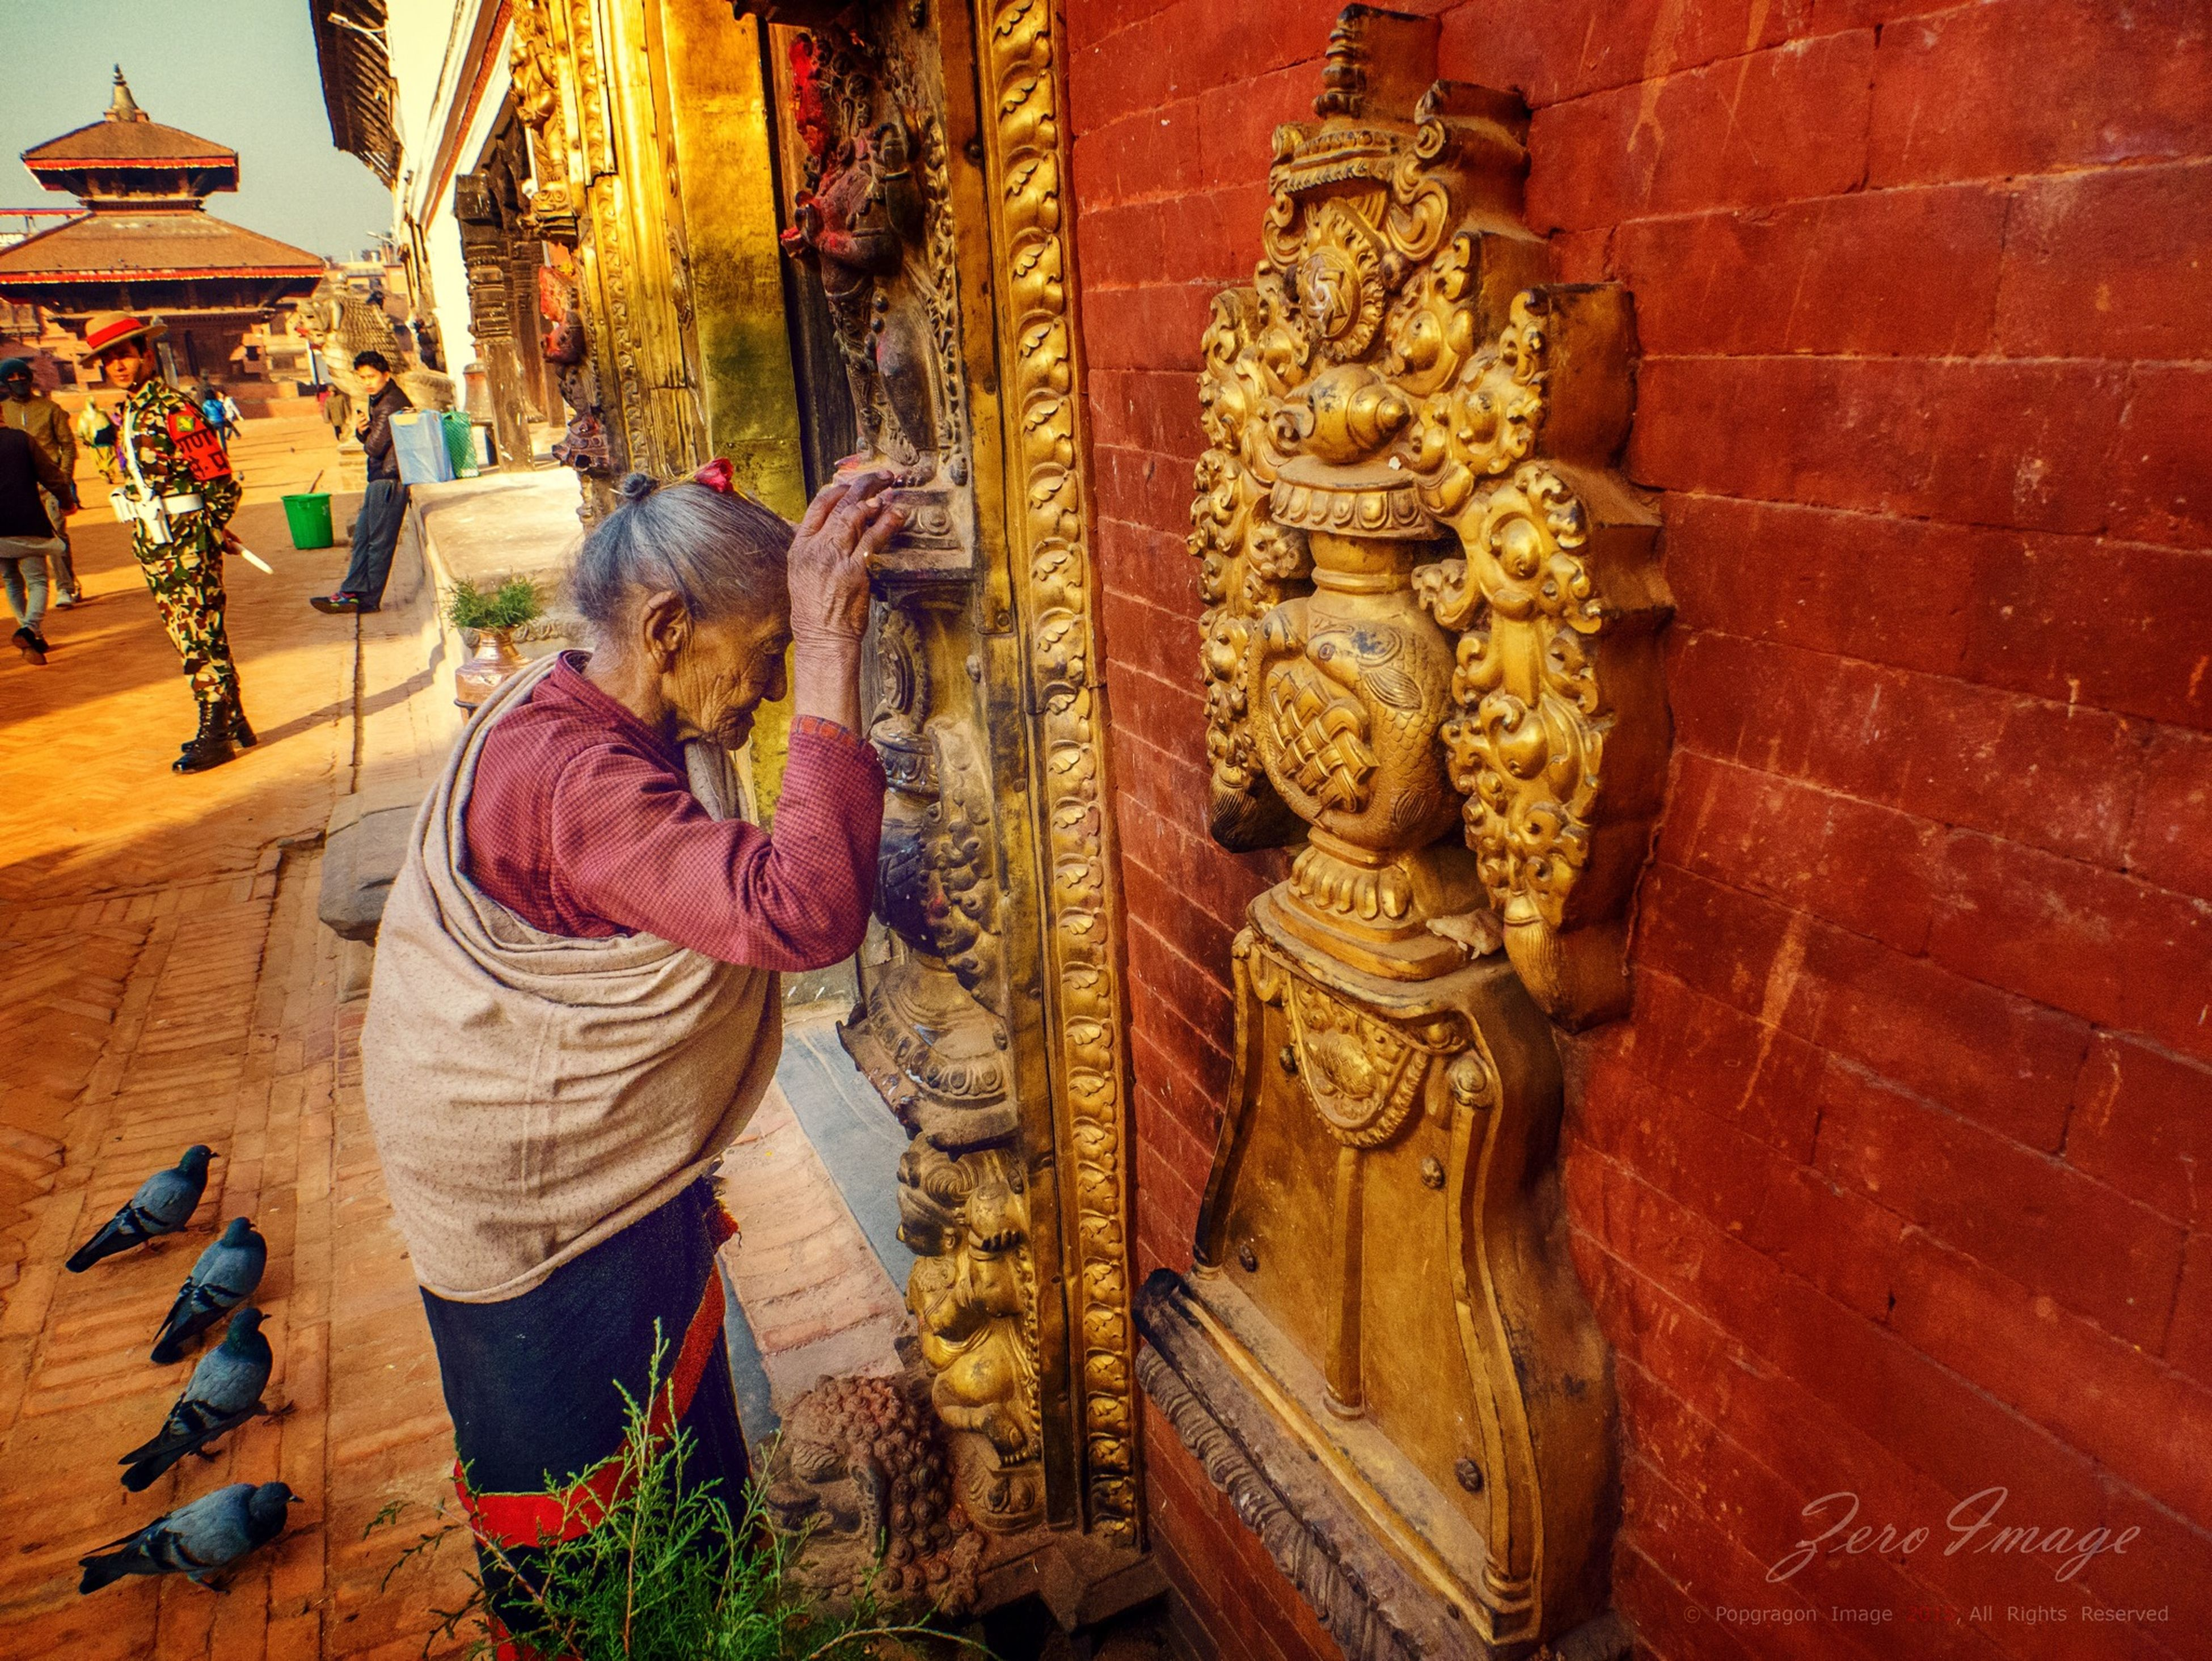 art, art and craft, creativity, religion, human representation, cultures, person, red, spirituality, men, architecture, statue, built structure, tradition, indoors, retail, lifestyles, traditional clothing